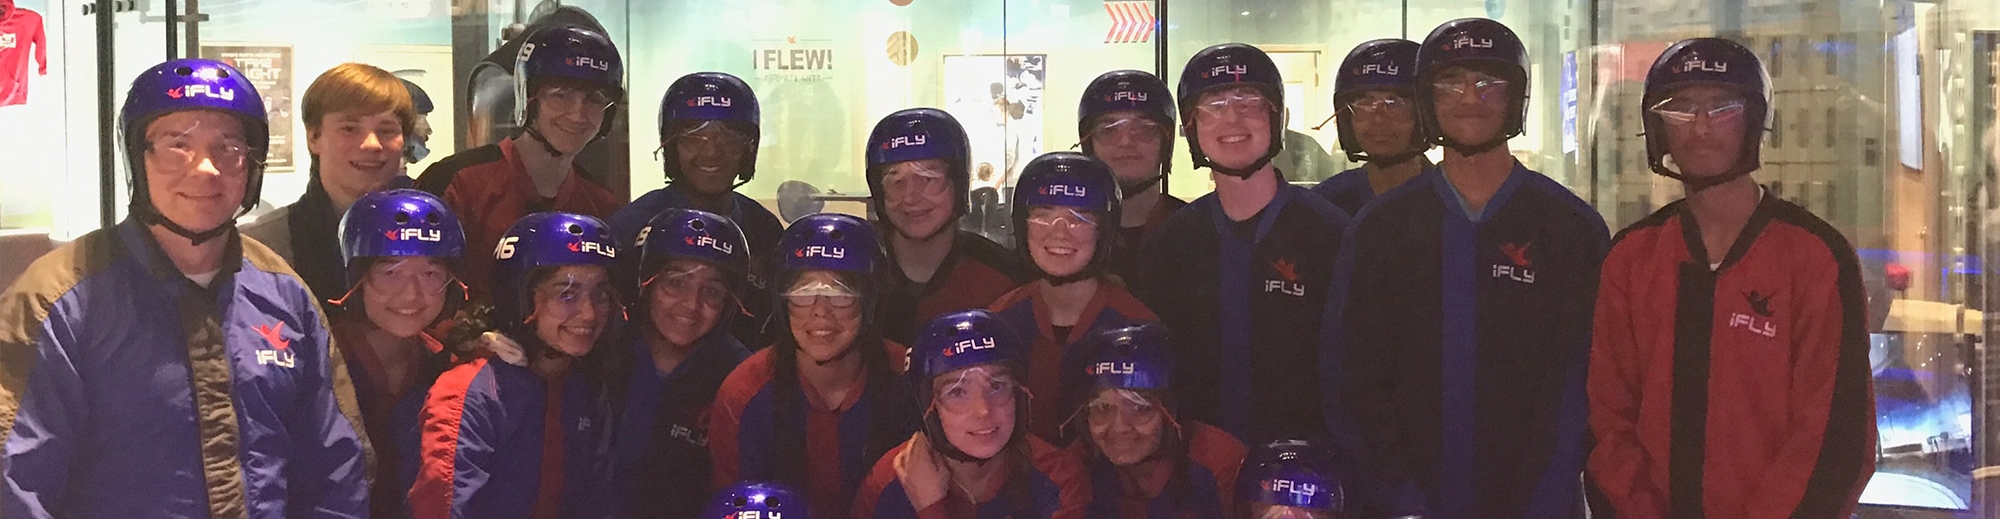 Students and adults pose at iFly